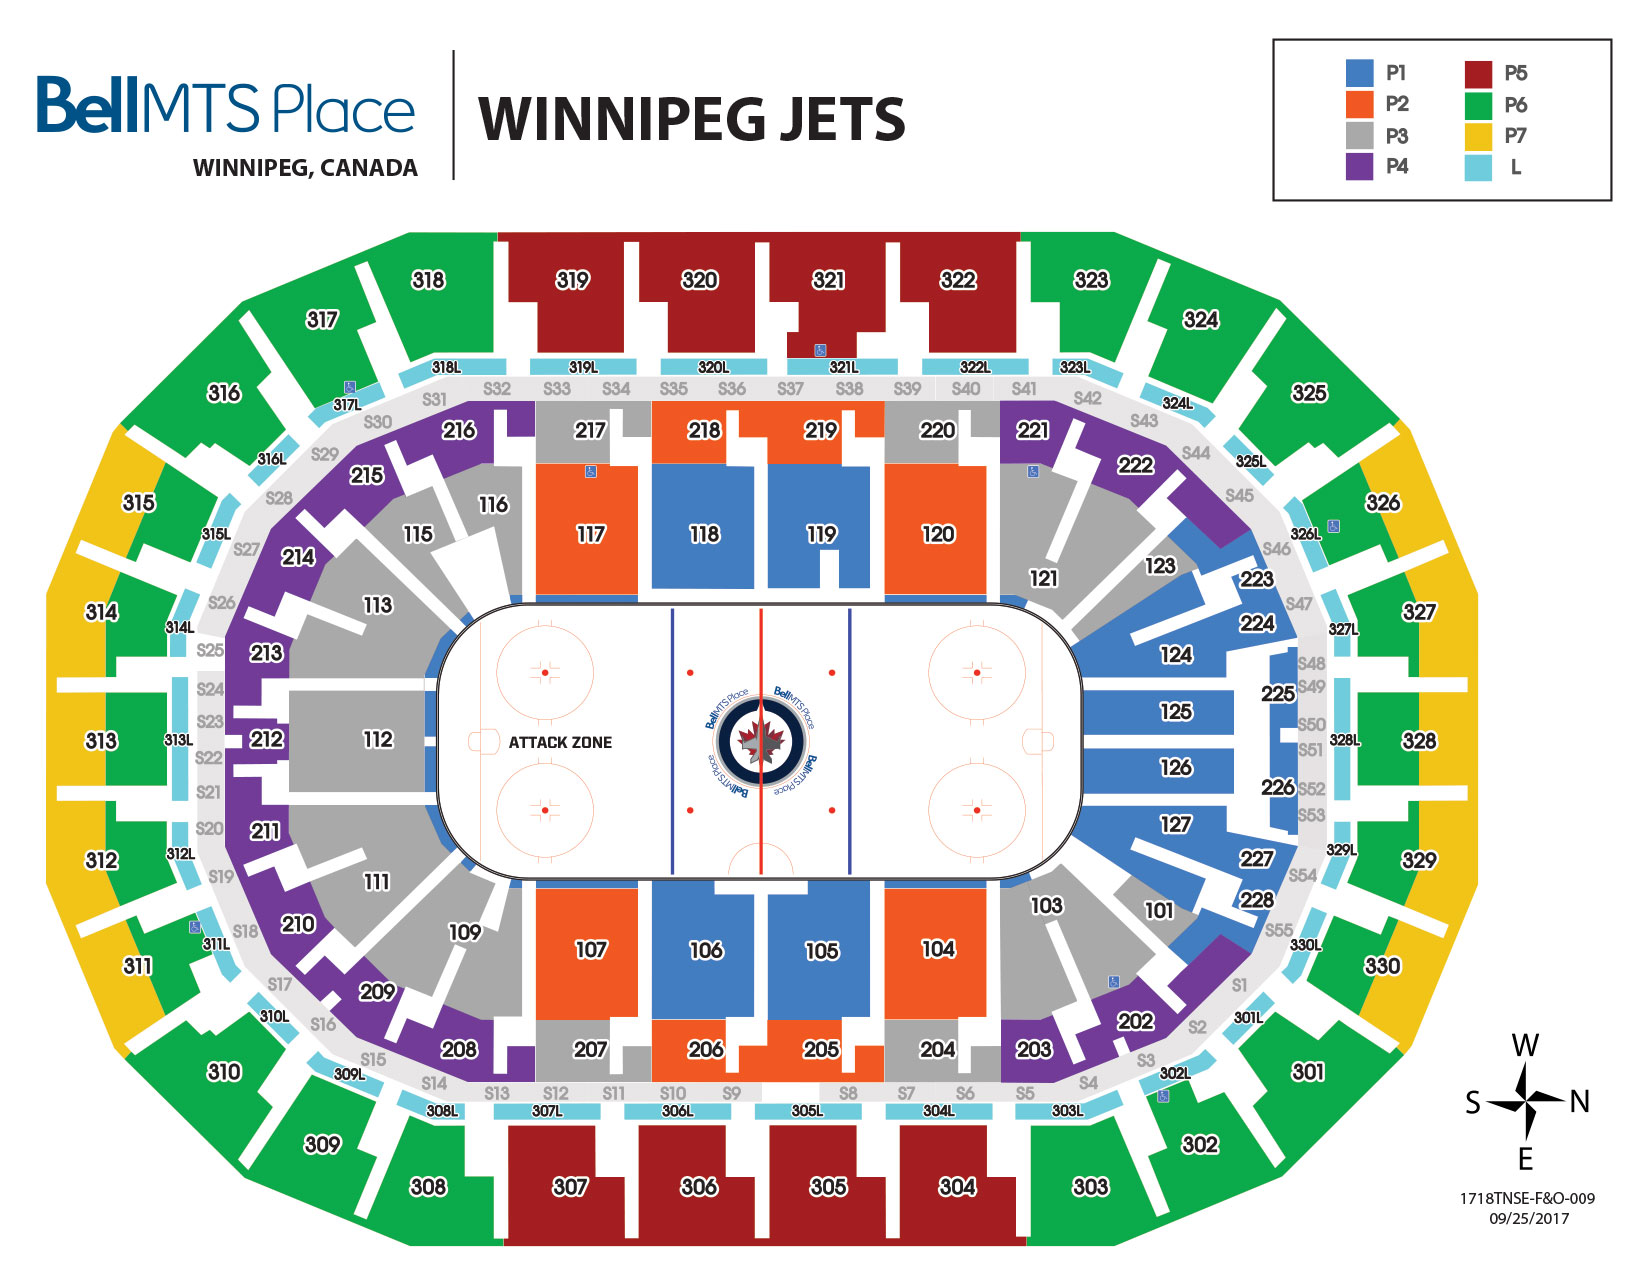 Bell MTS Place - Winnipeg Jets Seating